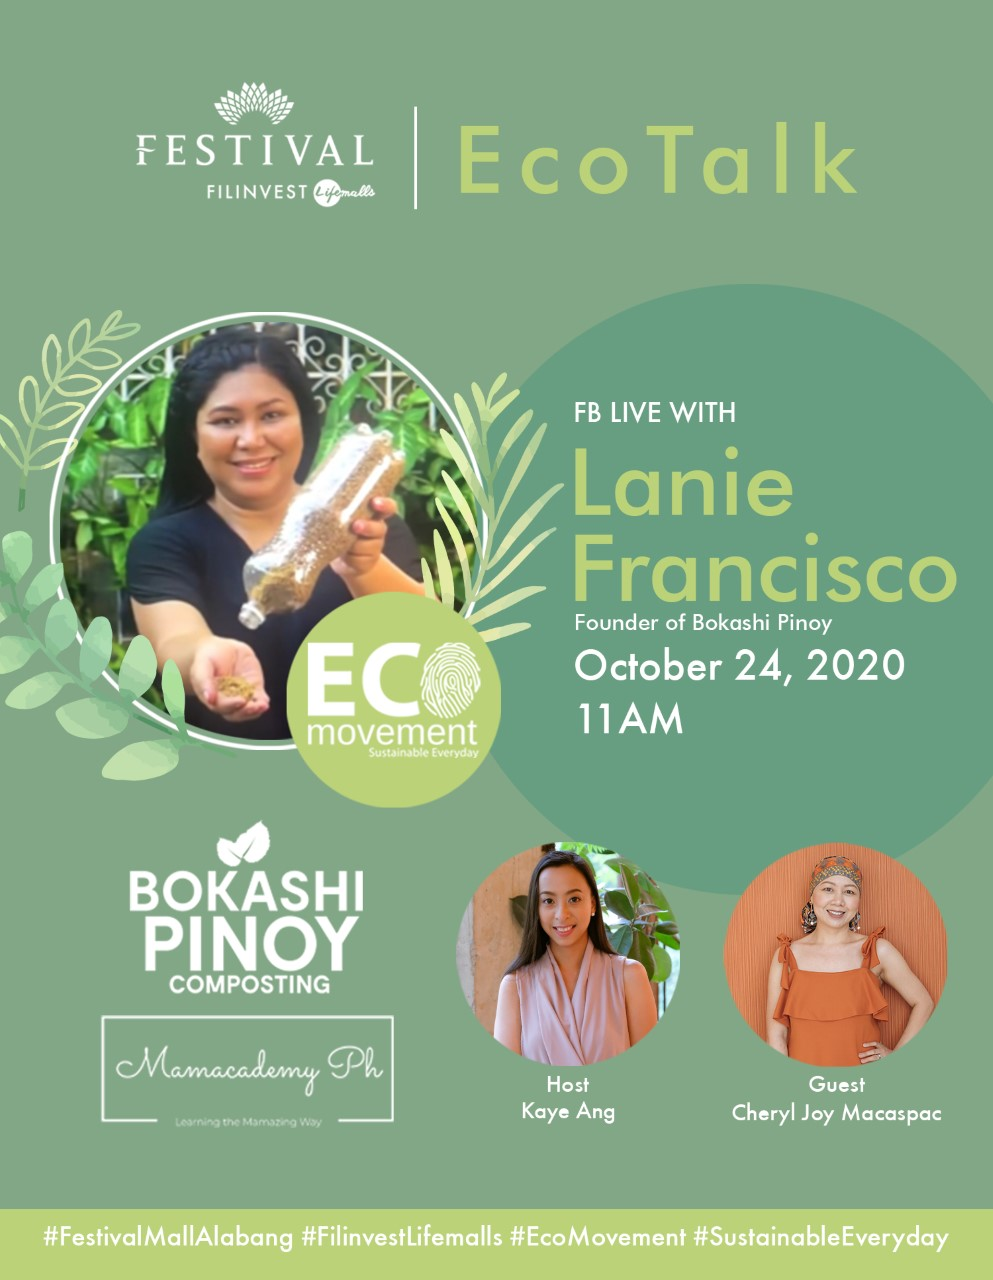 ECOTALK on October 24, 2020; 11AM